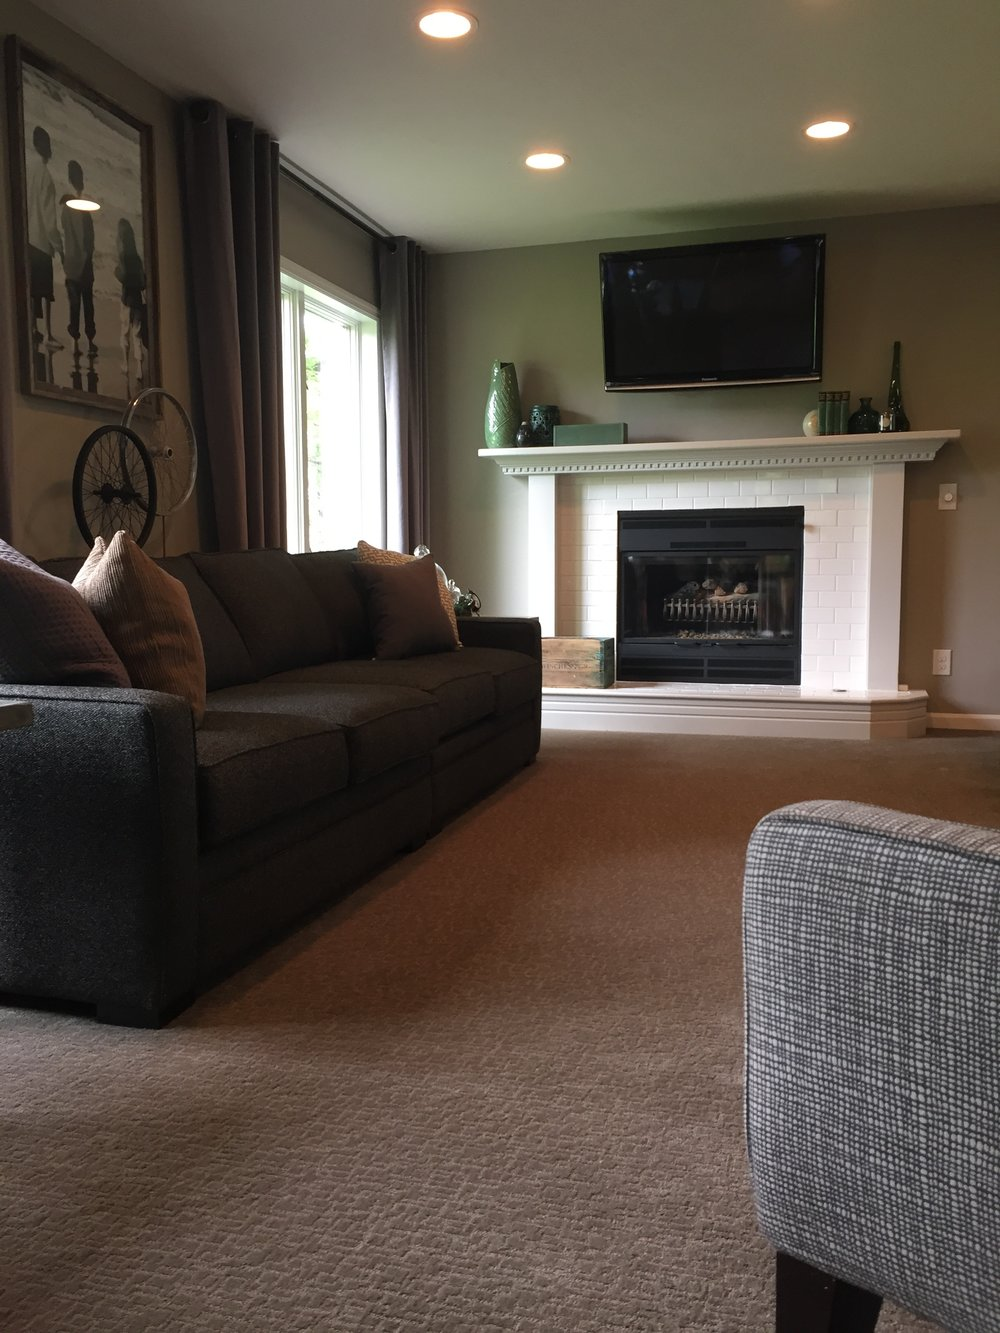 After - Living room fireplace wall